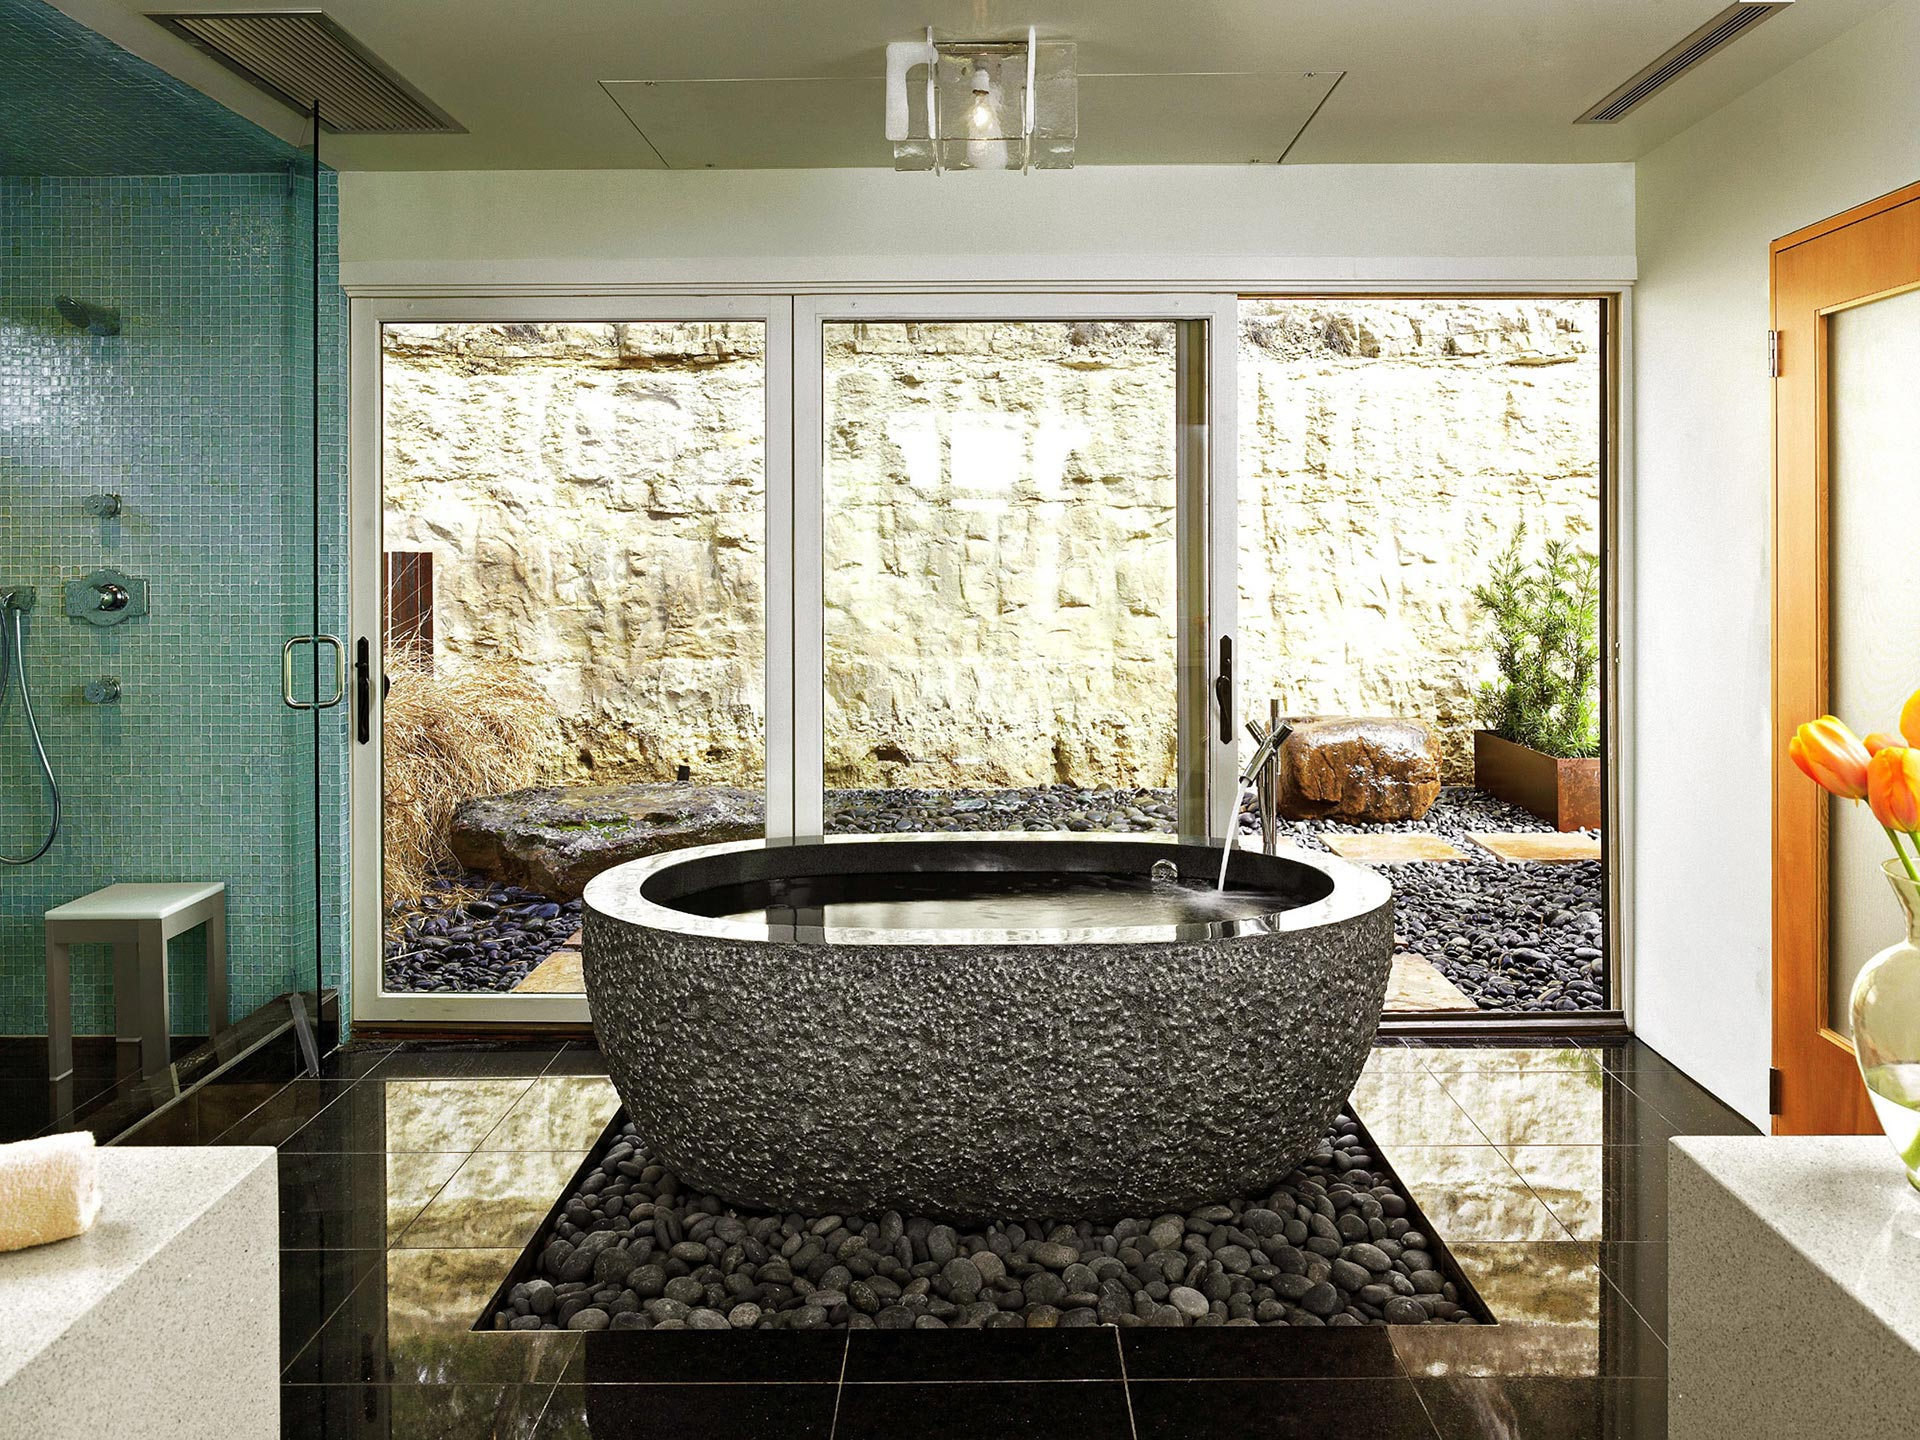 Badewann Freistehend These Are The Most Impressive Natural Stone Bathtubs On